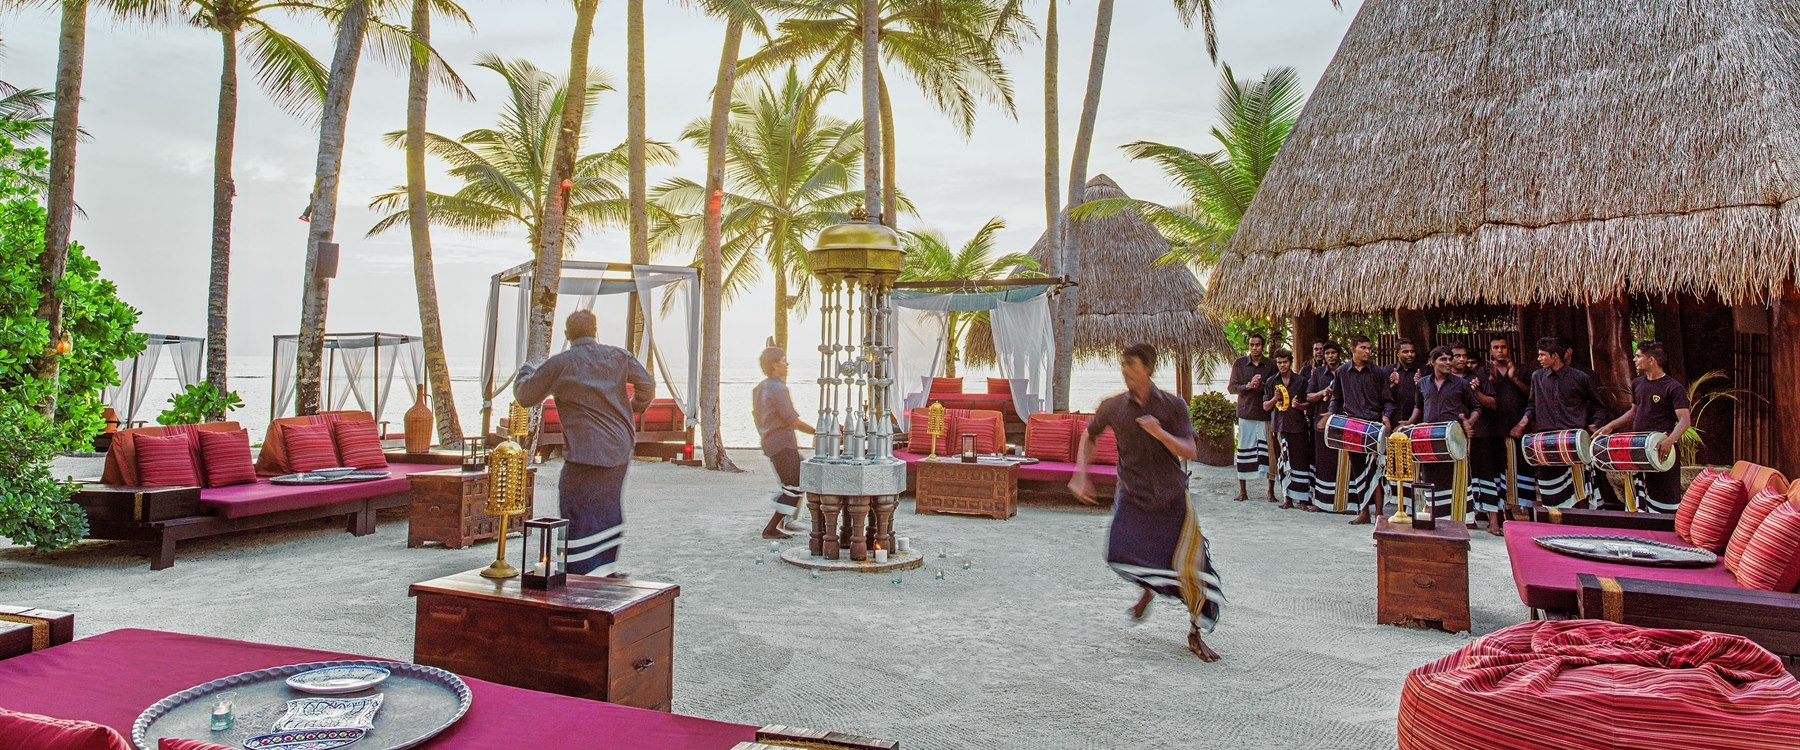 Fanditha Restaurant at One&Only Reethi Rah, Maldives